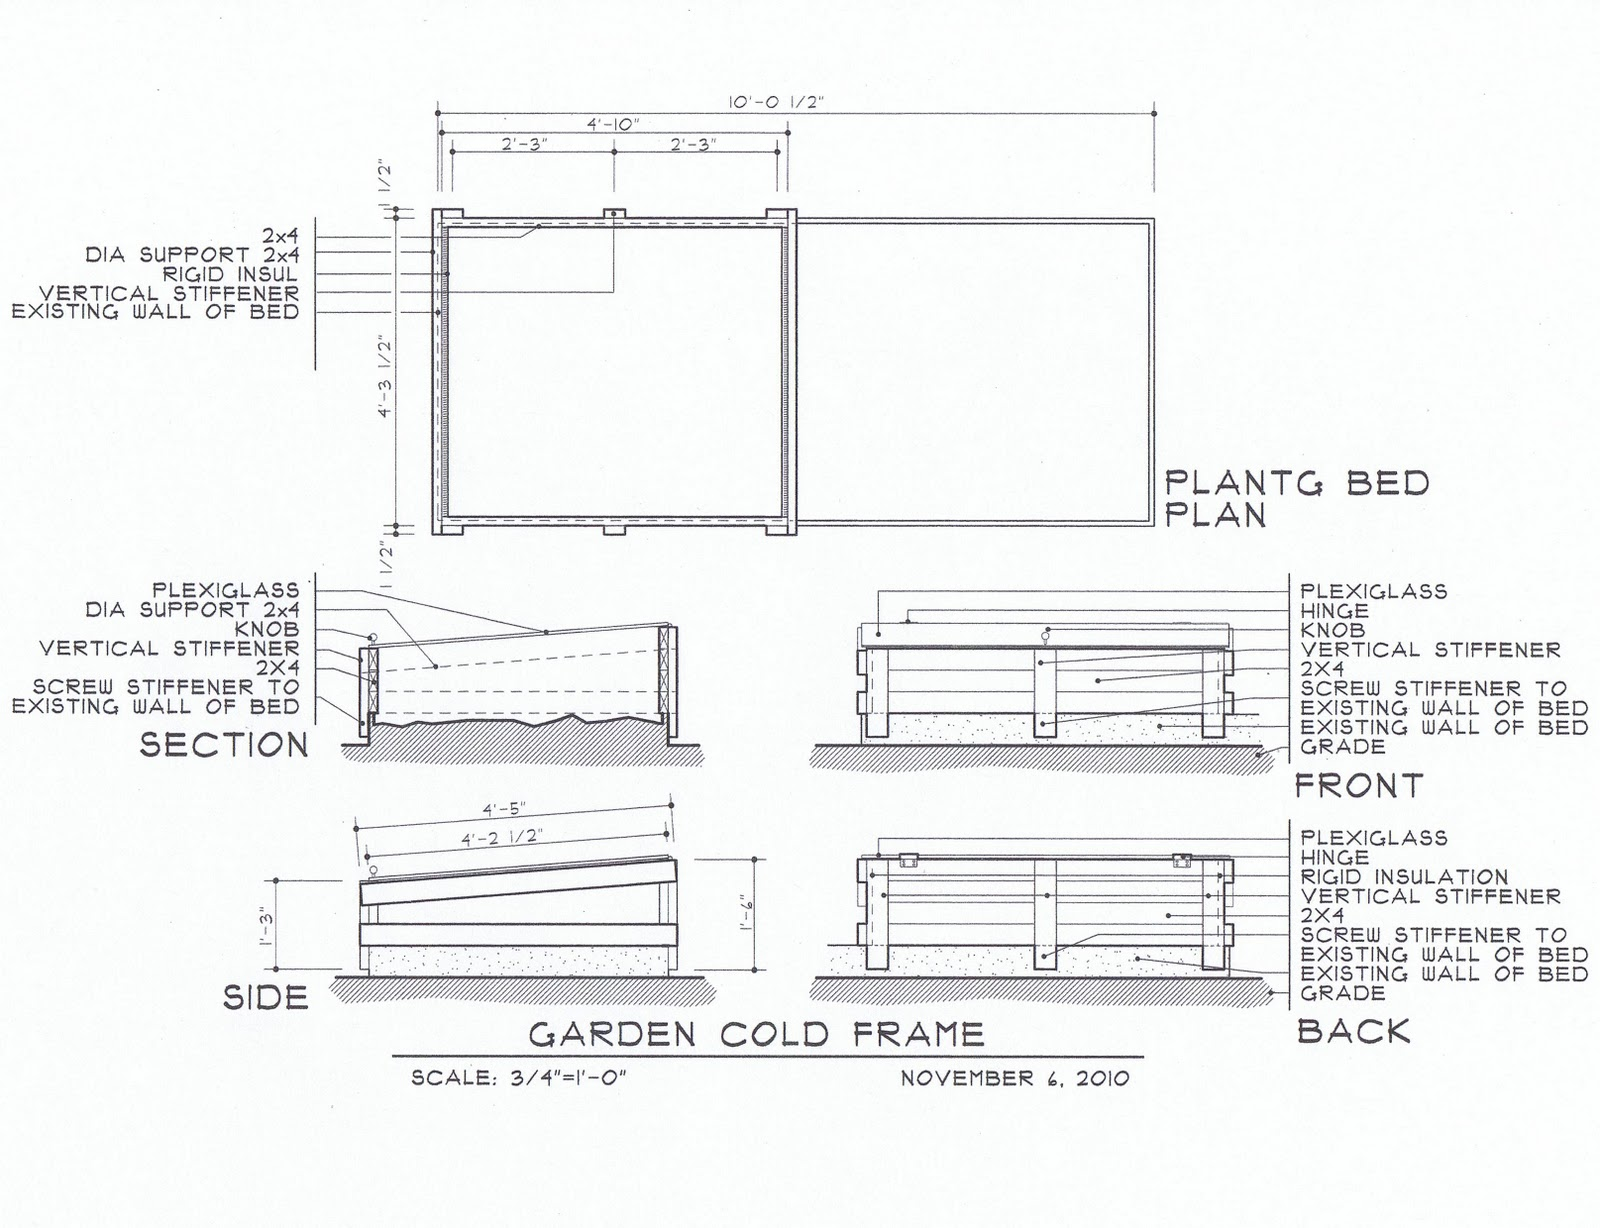 heres the italians design drawings for the cold frames